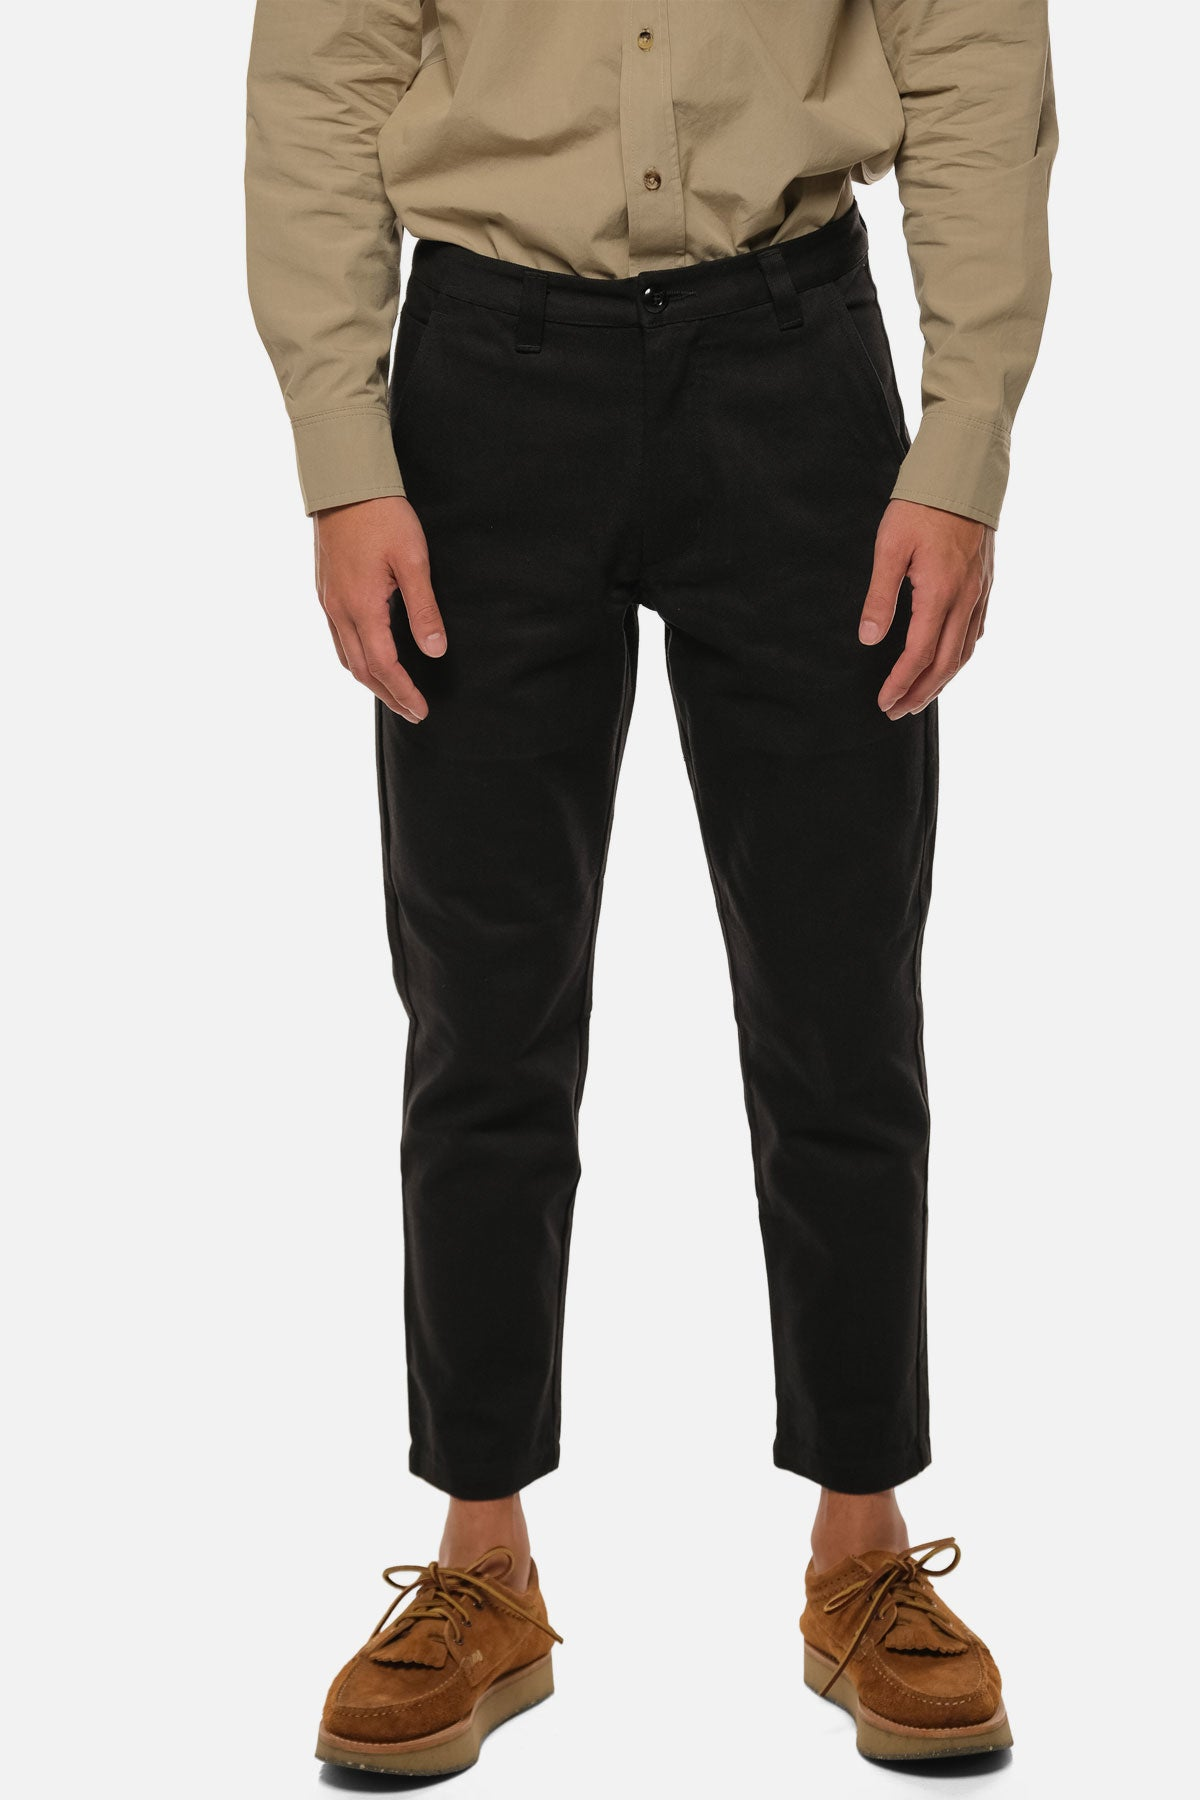 ATLAS TROUSER IN BLACK - Fortune Goods